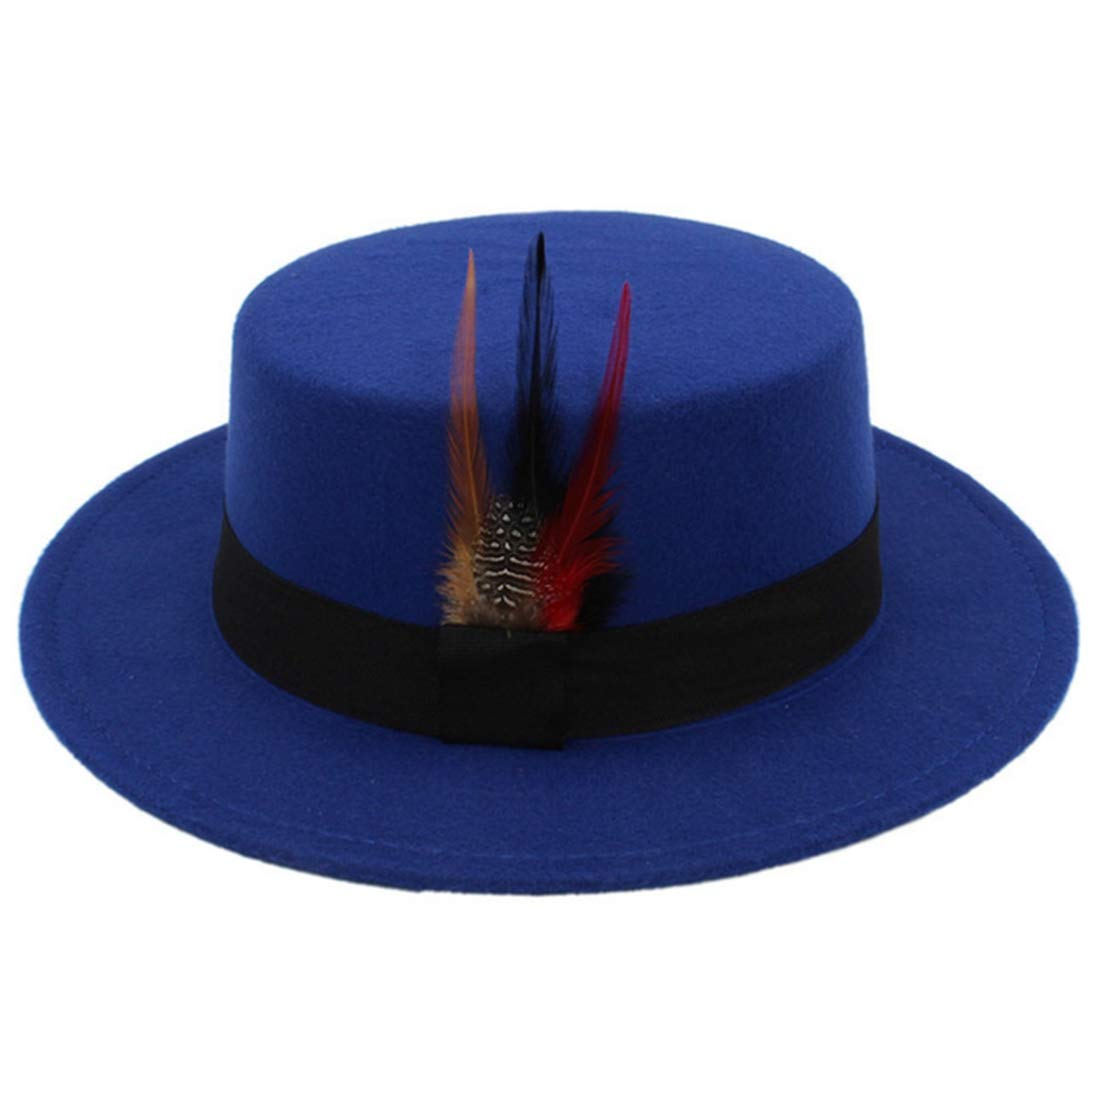 73fe4906 Men's Classic Wool Felt Fedora Hats Fashion Vintage Porkpie Hat Jazz Cap  with Feather and Black Band at Amazon Men's Clothing store: